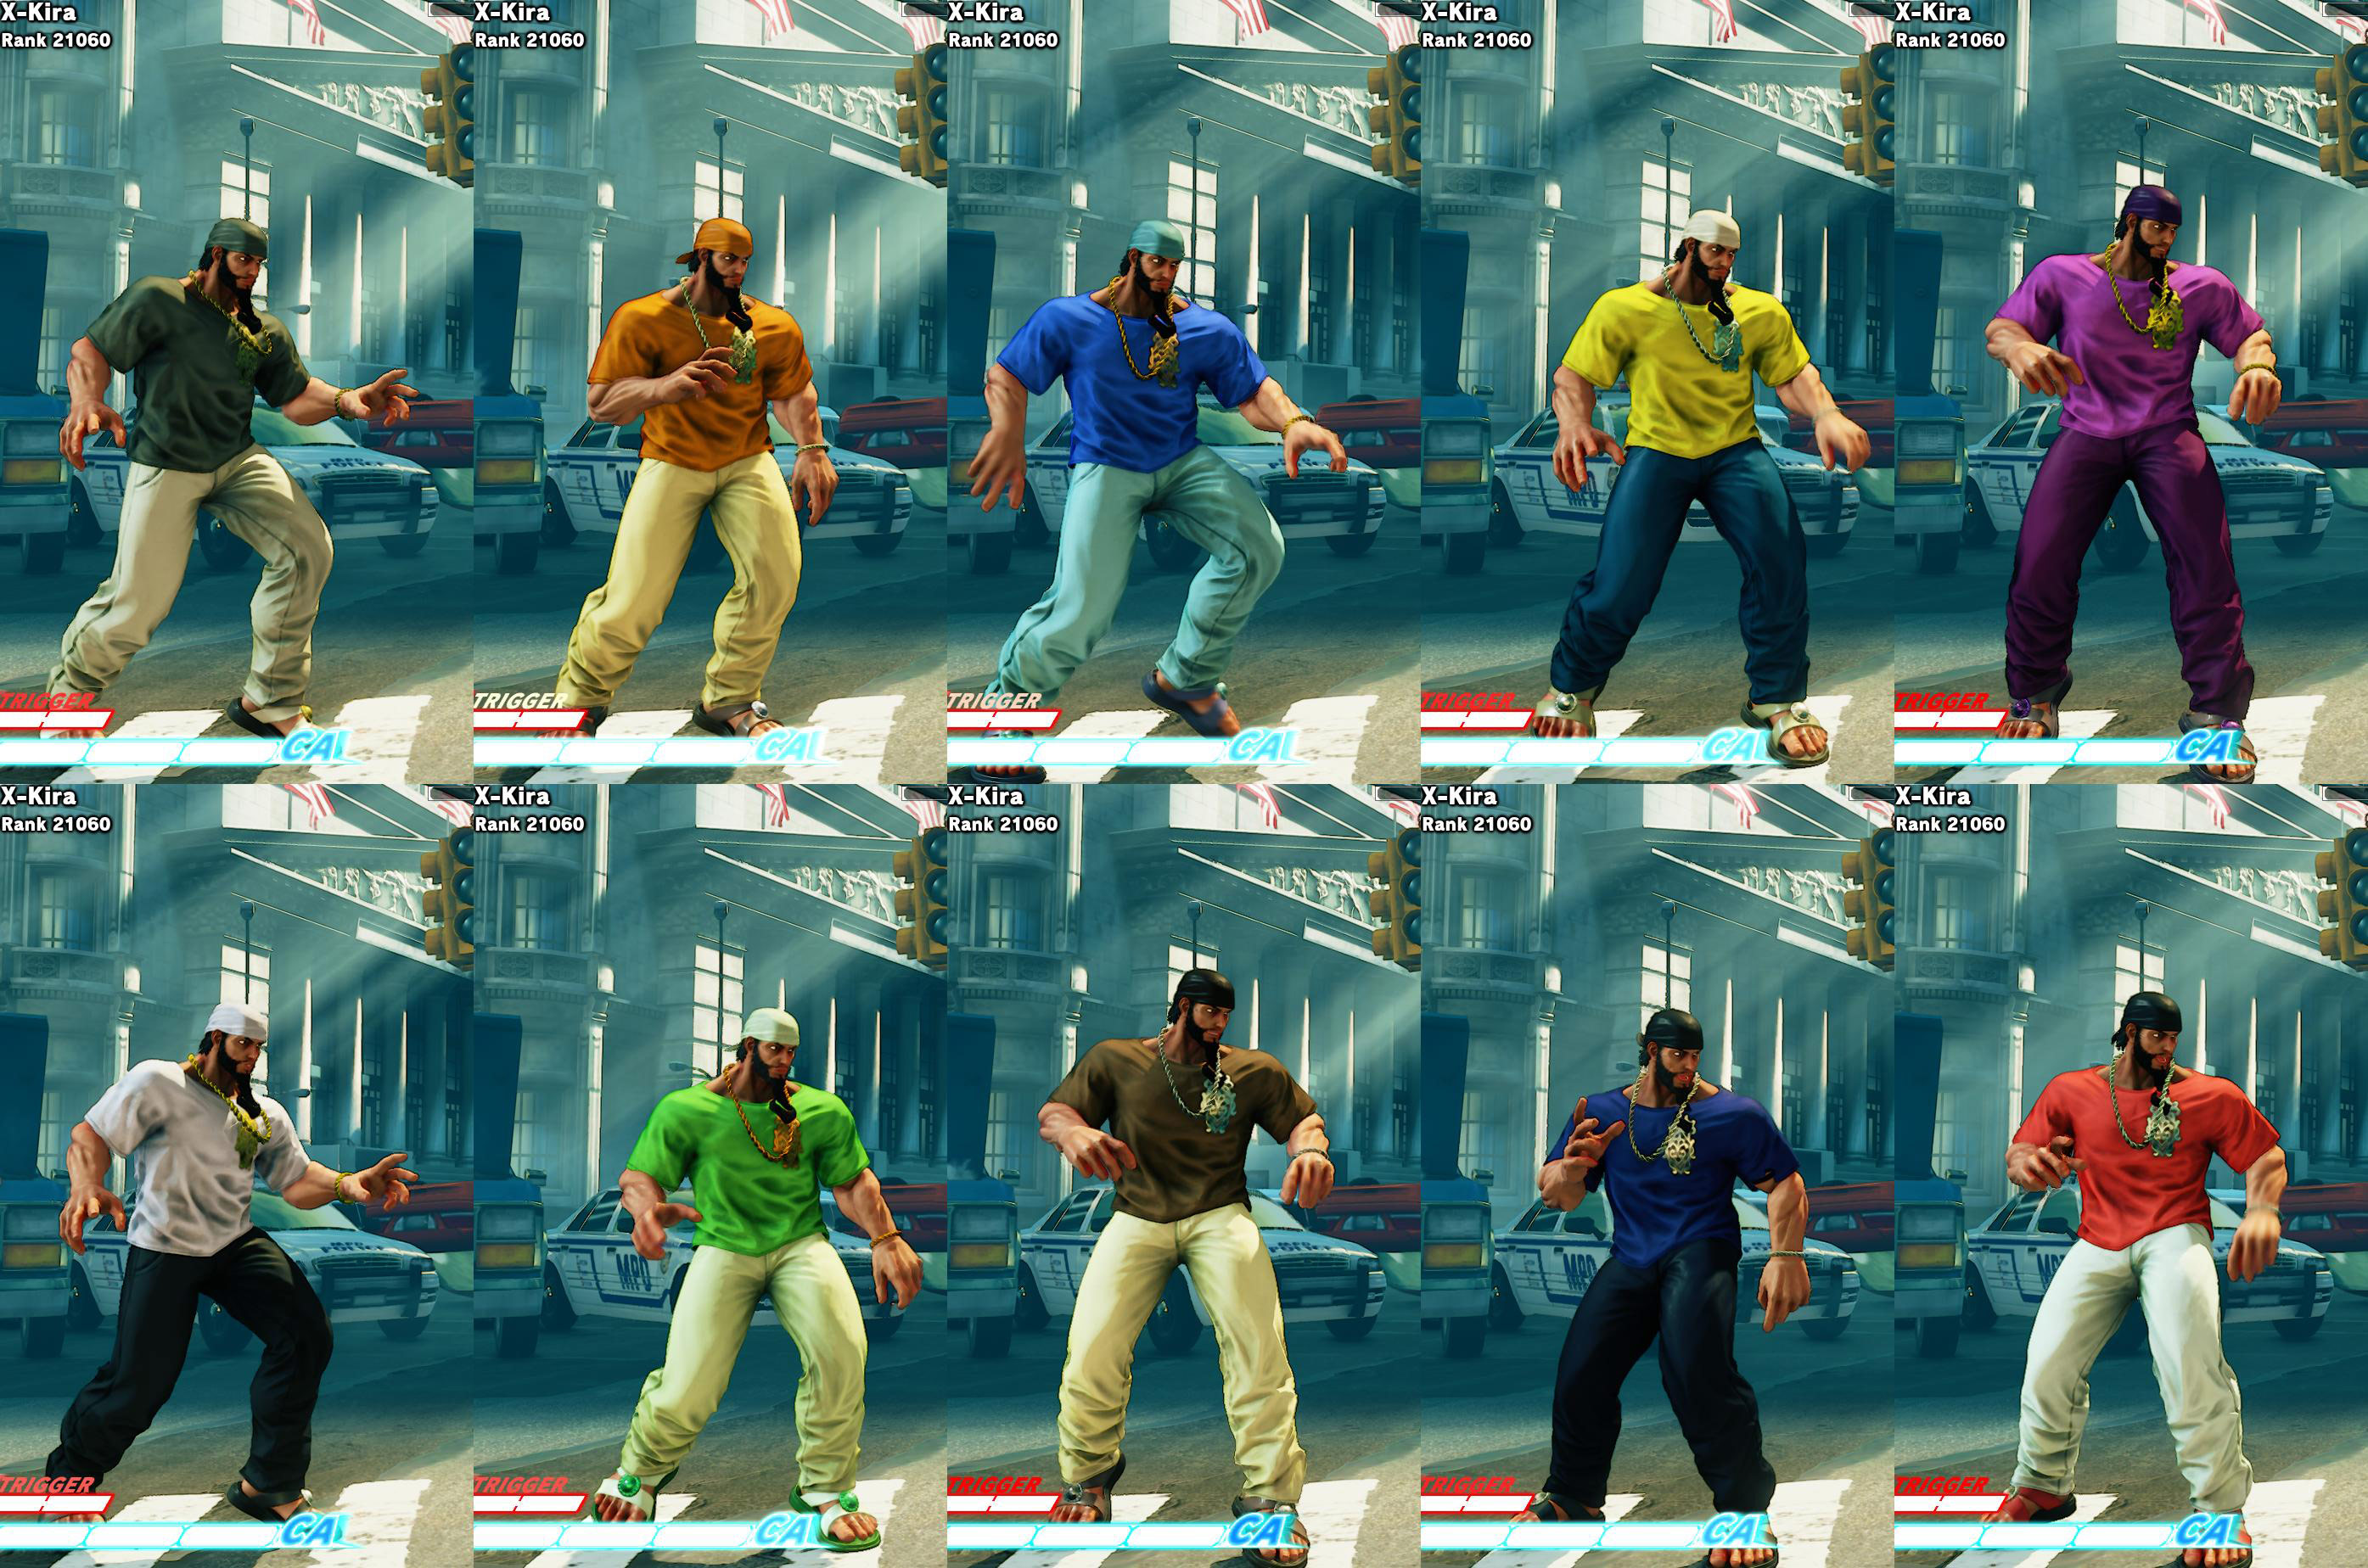 All colors for SF5 story and pre-order costumes 20 out of 21 image gallery